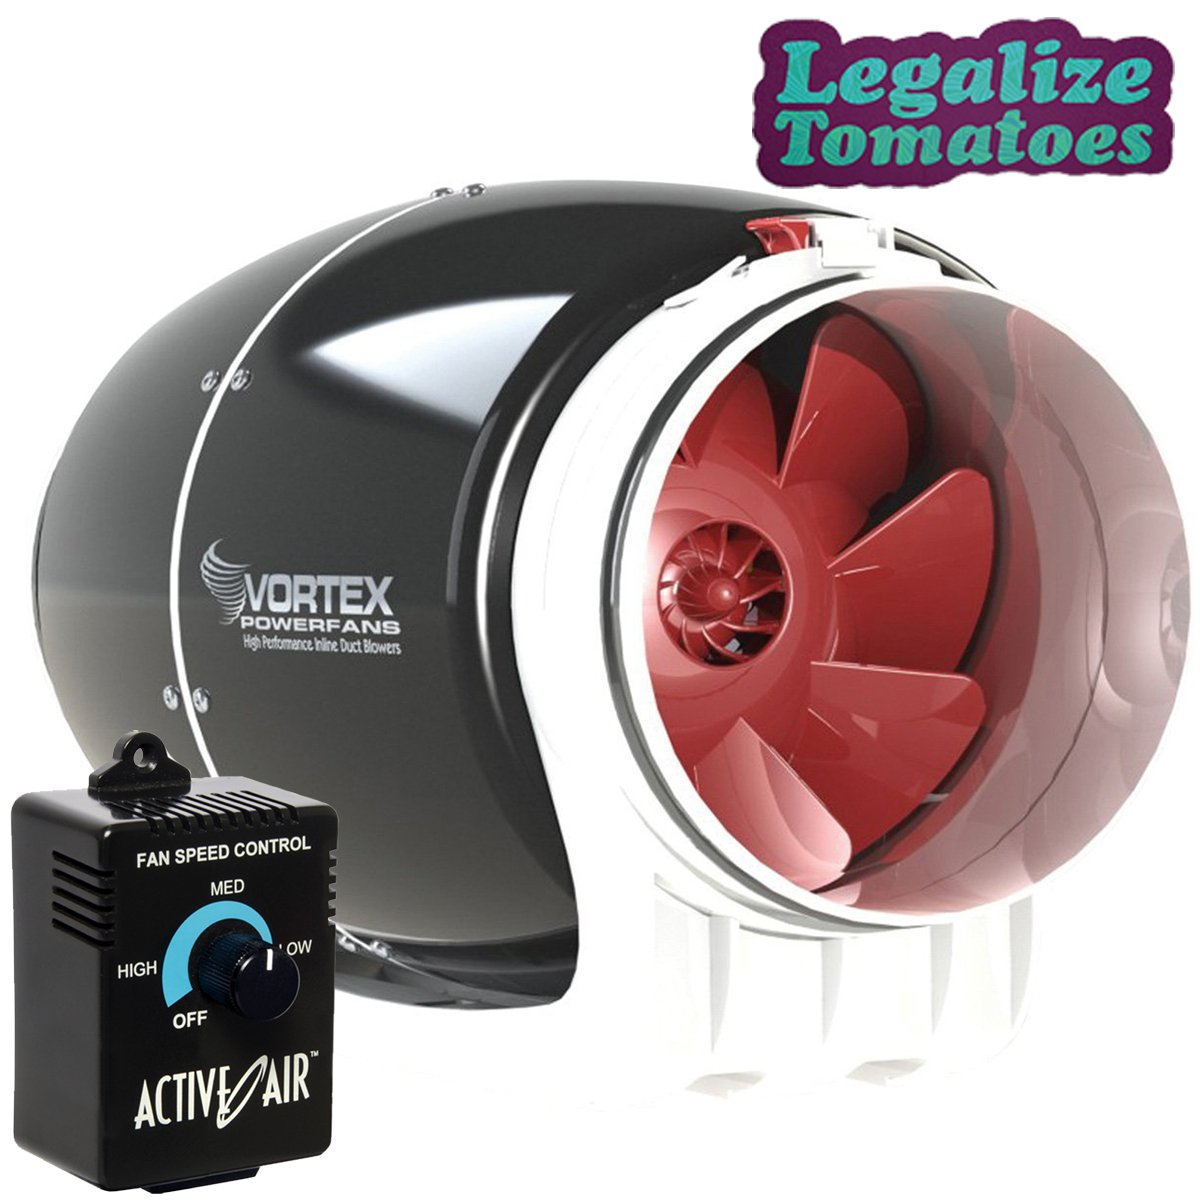 Vortex 6'' Inch S-Line 340 CFM Round Inline Exhaust Power Fan with FREE Active Air Controller and FREE Sticker | Aerodynamic Design for Optimized Cooling and Airflow | Maintenance-Free by Atmosphere (Image #9)